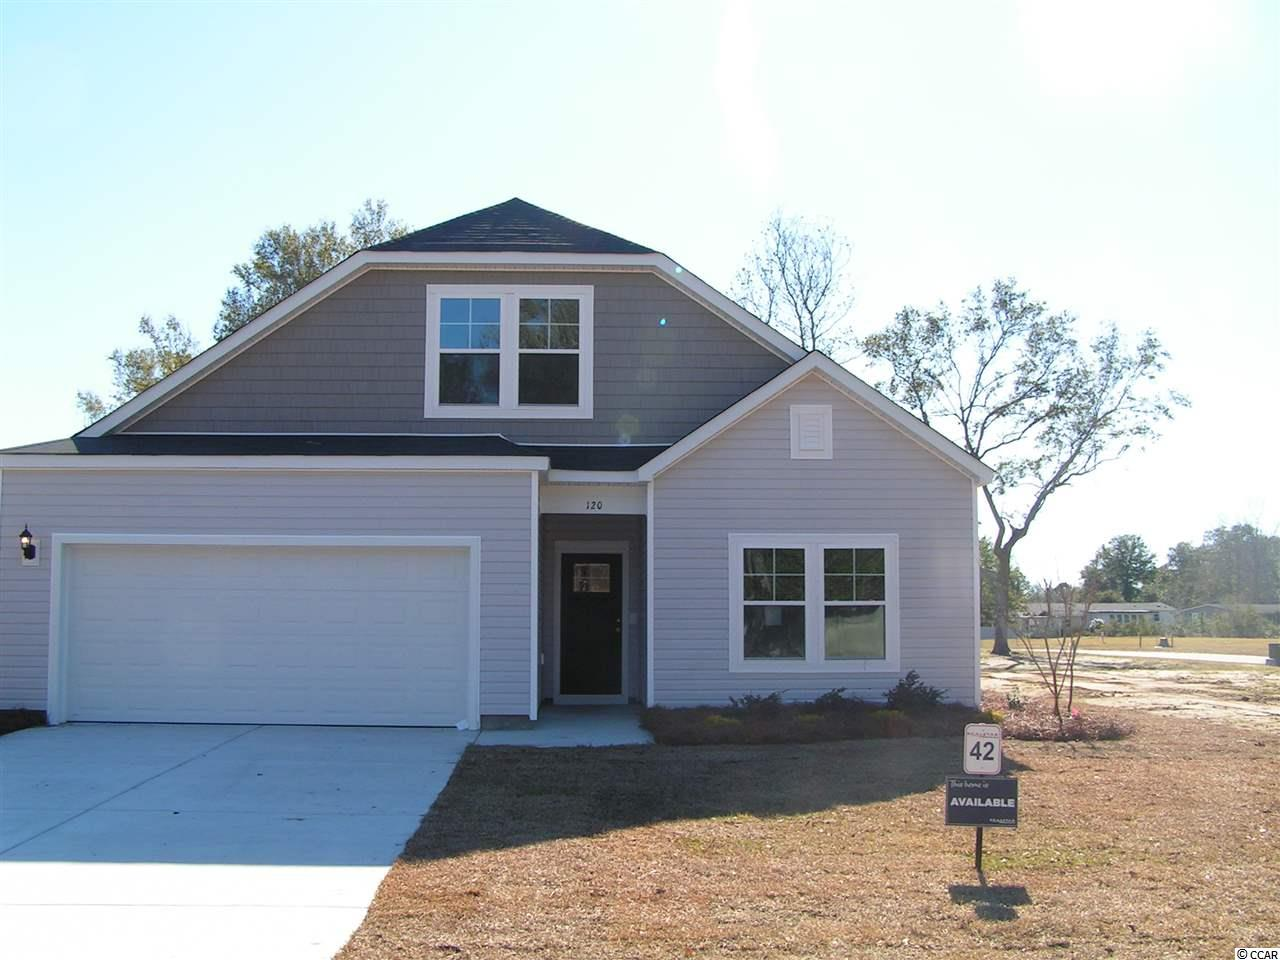 This home is To Be Built in the sought after community of Pawleys Cove, opens and upgrades will vary as built.  Pawleys Cove is a quaint community nestled in the town of Pawleys Island, a famous seaside island known for it's carefree, laid back lifestyle with a rich history and timeless culture.  There are many outdoor activities like crabbing, fishing, kayaking, and bike trails as well as popular attractions like Brookgreen Gardens and Huntington Beach State Park.  The Continental plan is a beautiful 2 story home with 3 bedrooms down and 1 bedroom and a loft upstairs.  An open concept family, kitchen and dining area with a large work island makes this a great home for entertaining guests!  The owner's suite is 17' x 13' and features a large walk in closet and a linen closet in the owners bath. Pictures in this listing are of a similar home and not the actual home and options and upgrades will vary as built.  All information is deemed reliable but not guaranteed.  Buyers is responsible for verification.